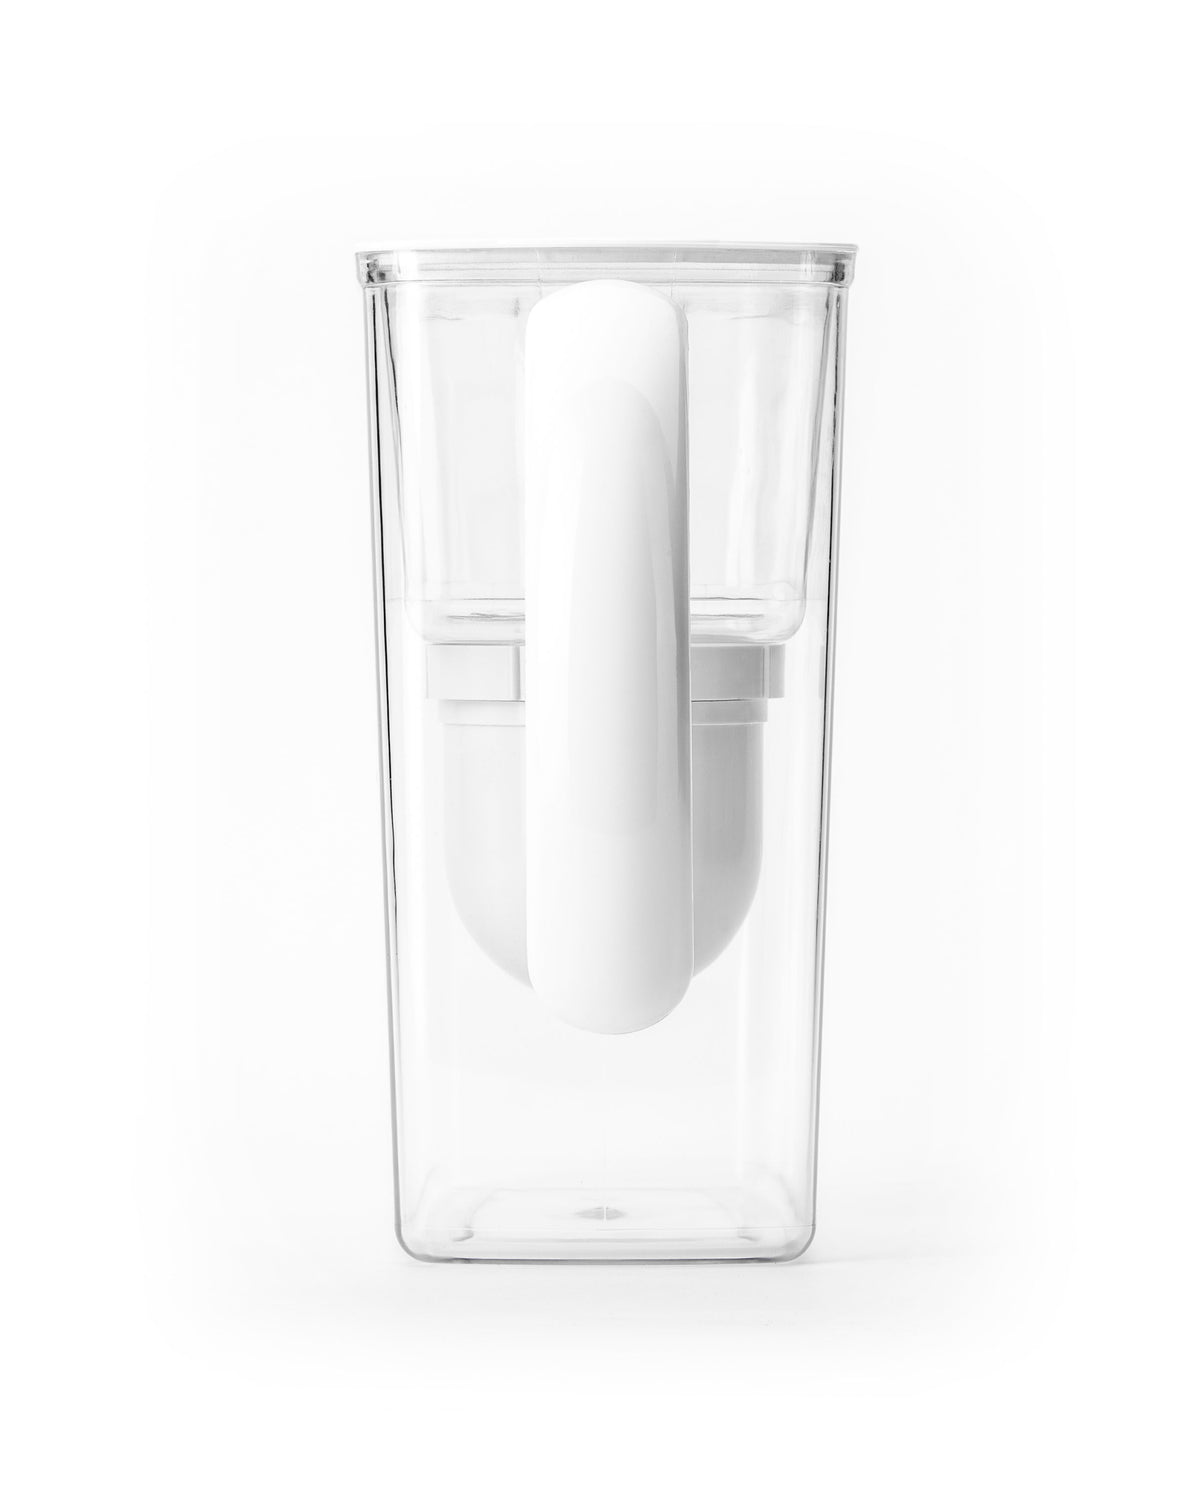 Fluoride filtered water pitcher